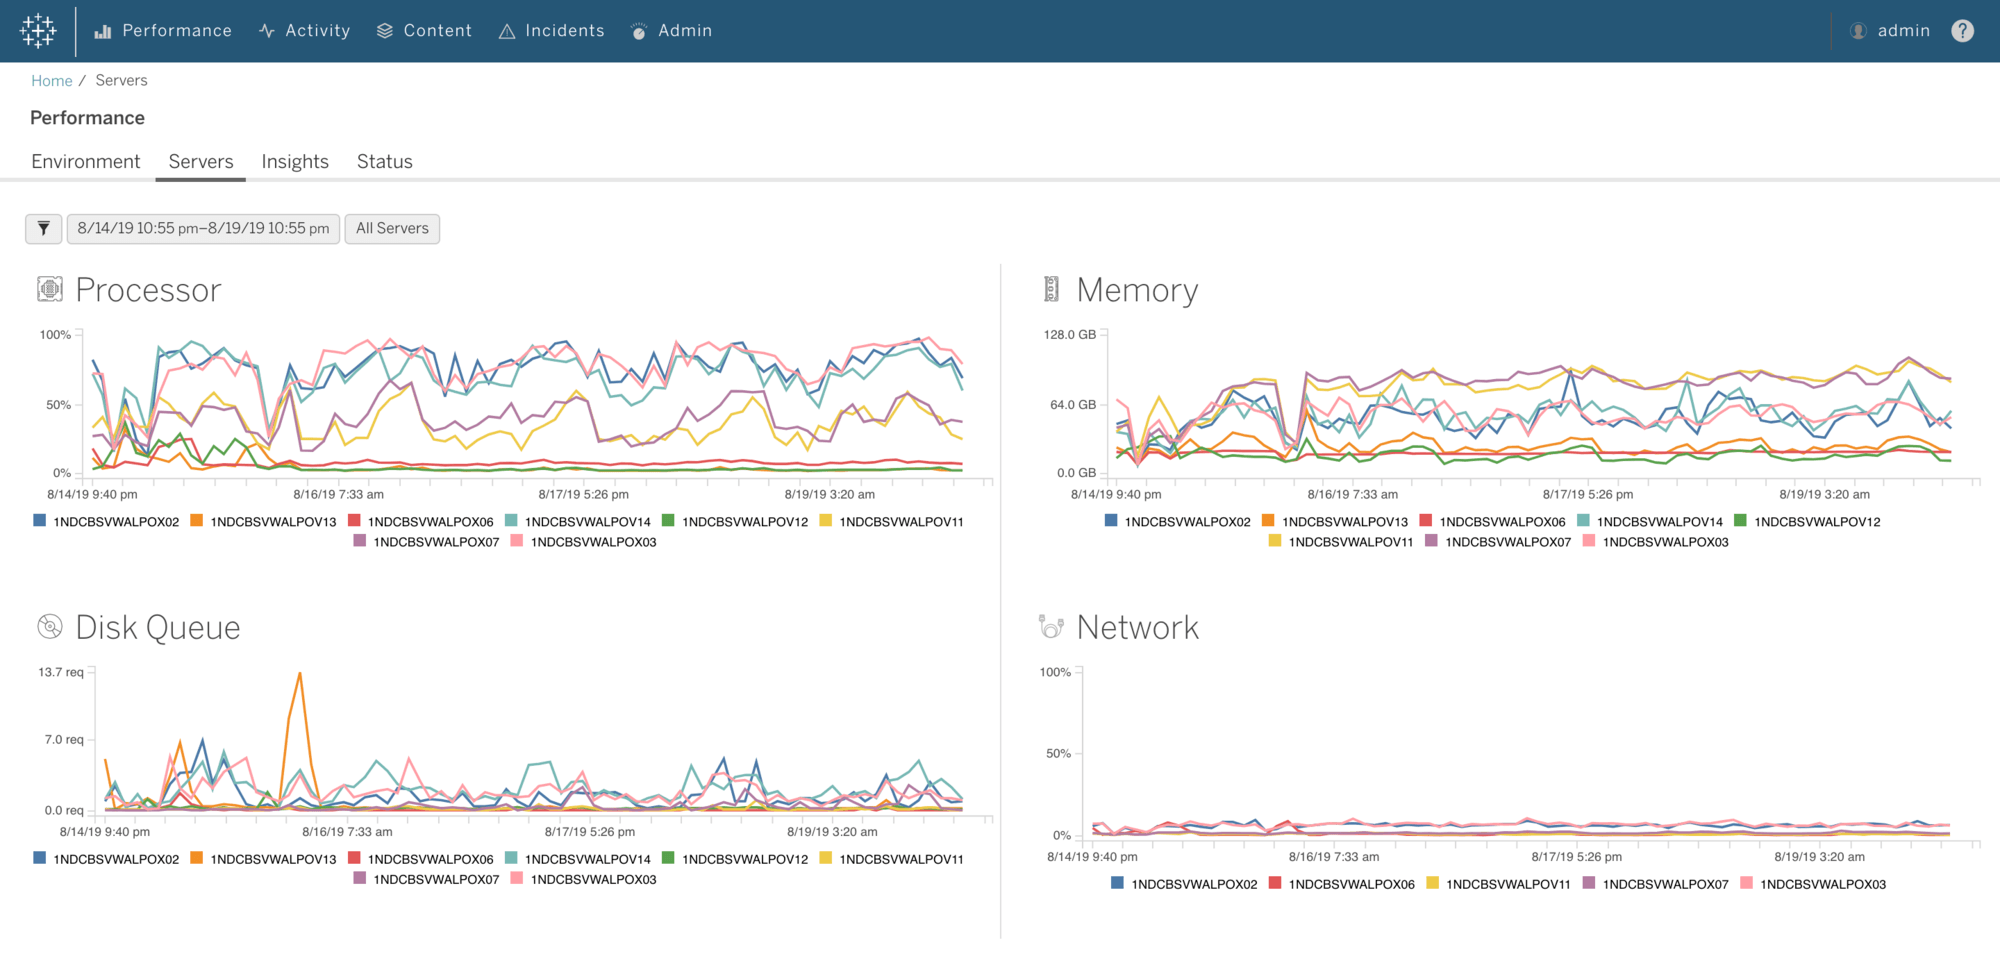 image of Better visibility for efficient server management